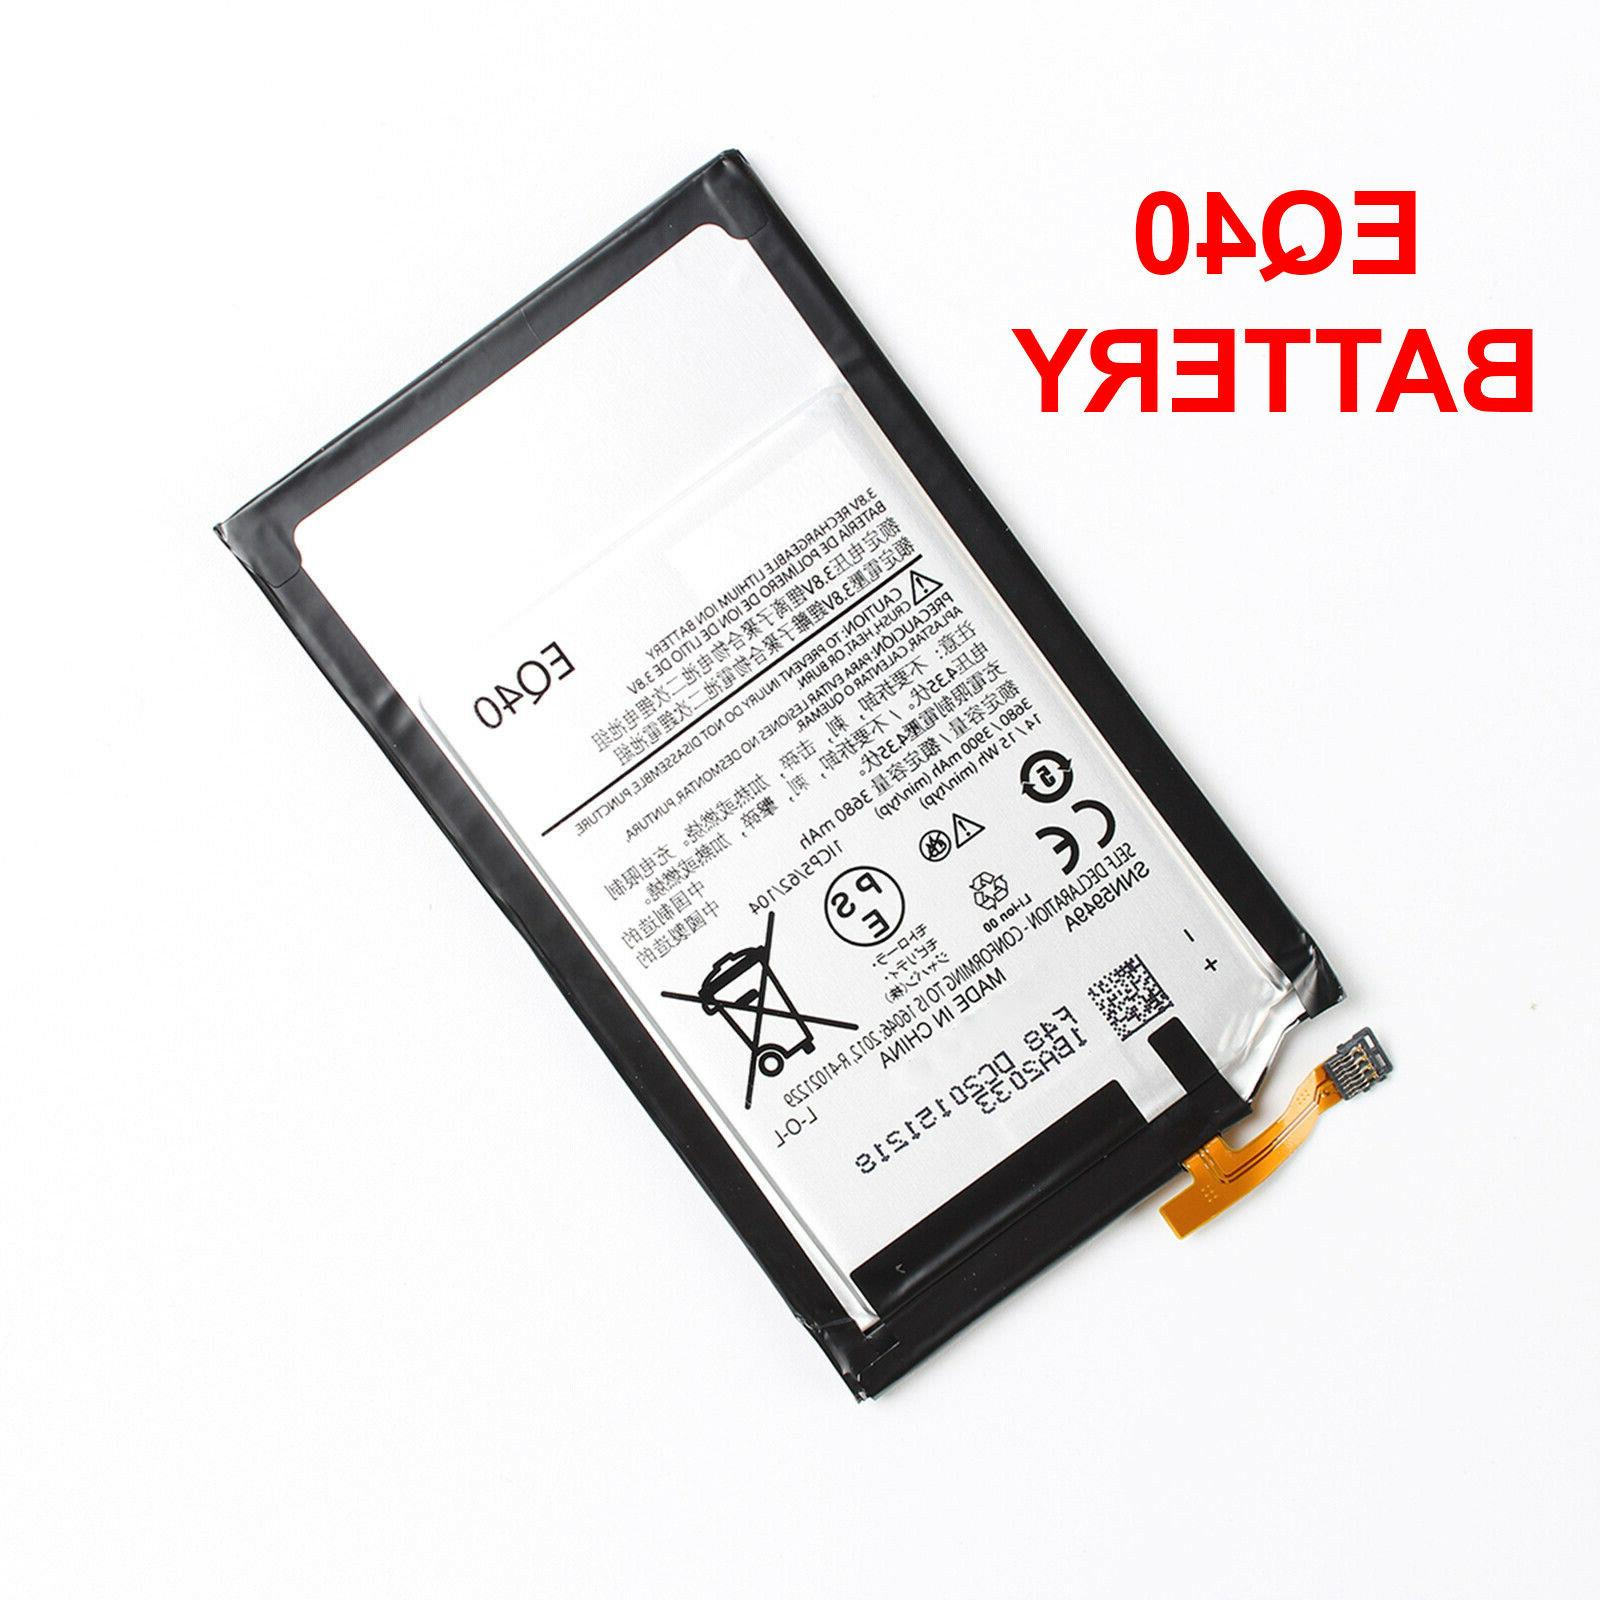 oem new replacement battery for motorola droid